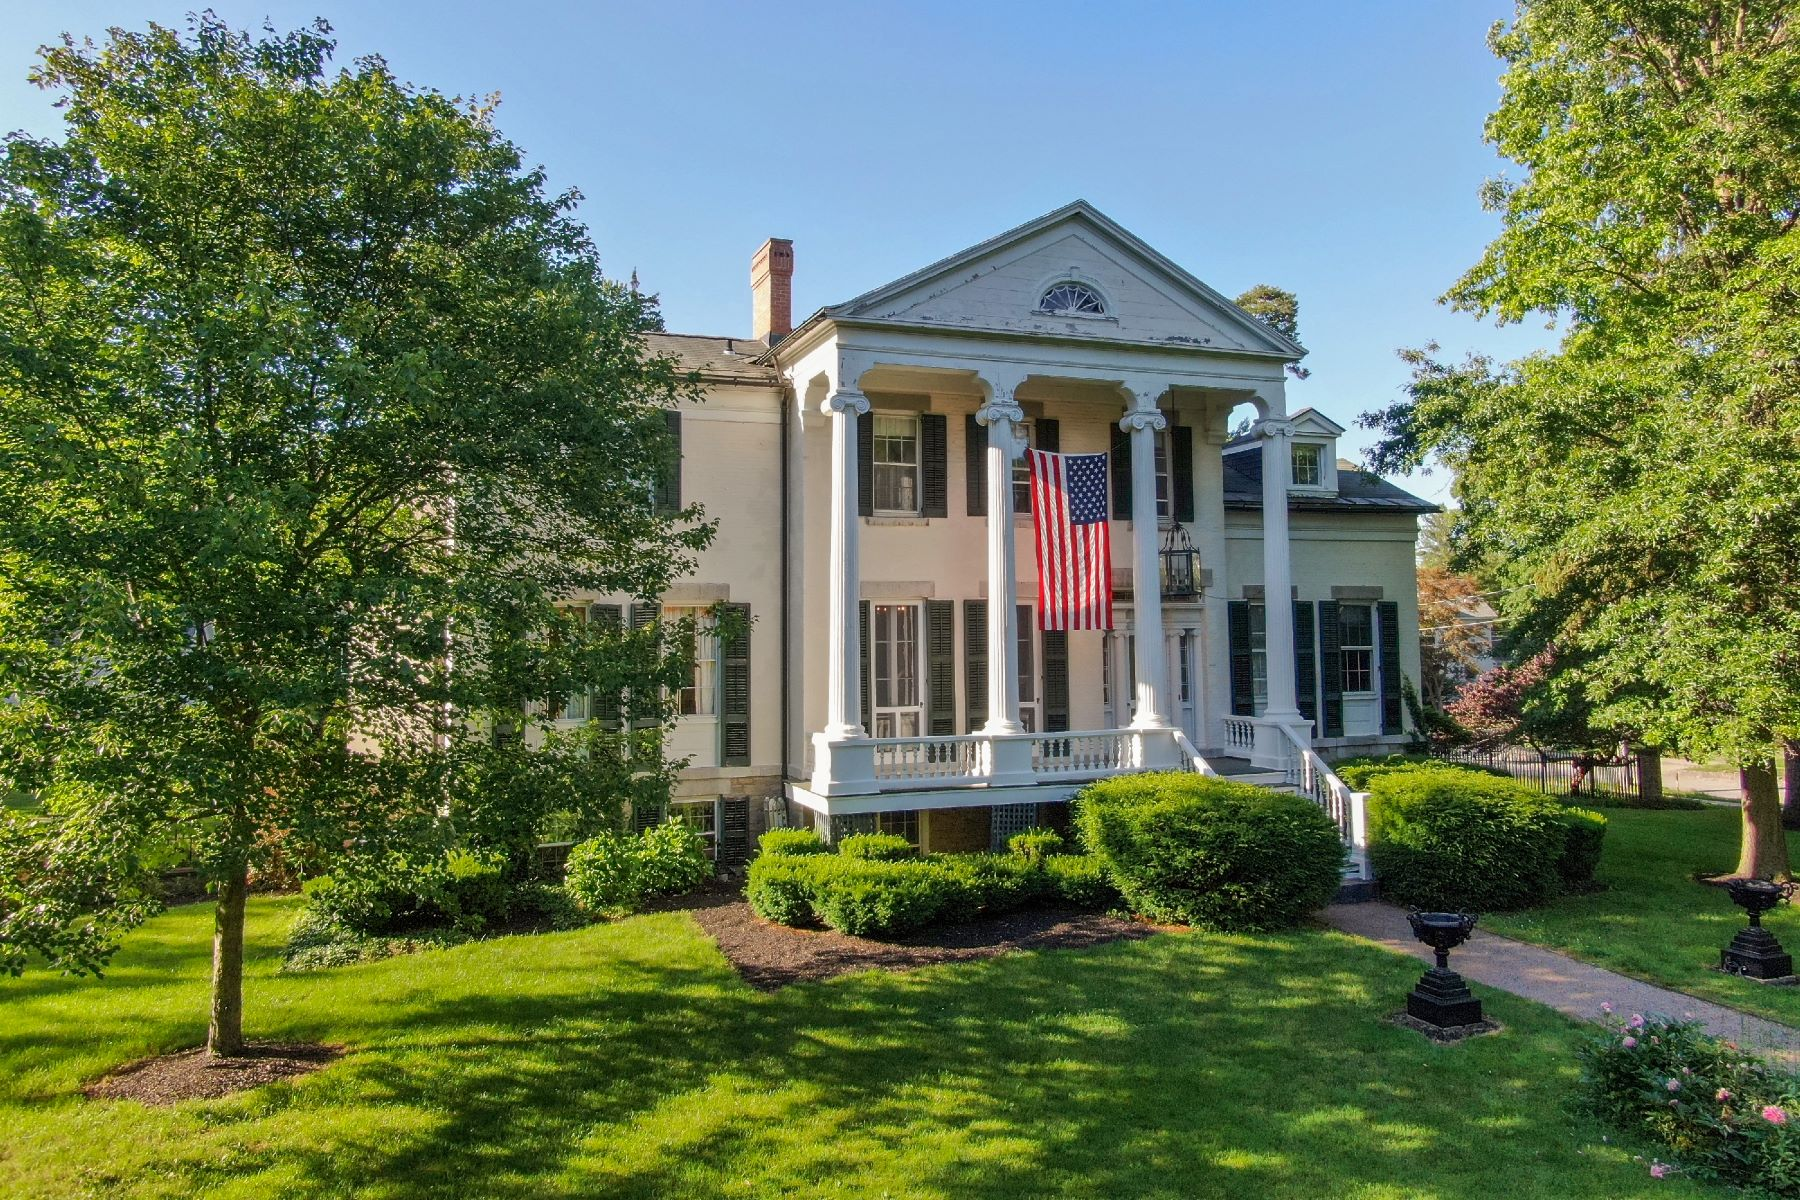 Single Family Homes for Sale at Greek Revival in Skaneateles Village 62 West Genesee Street Skaneateles, New York 13152 United States